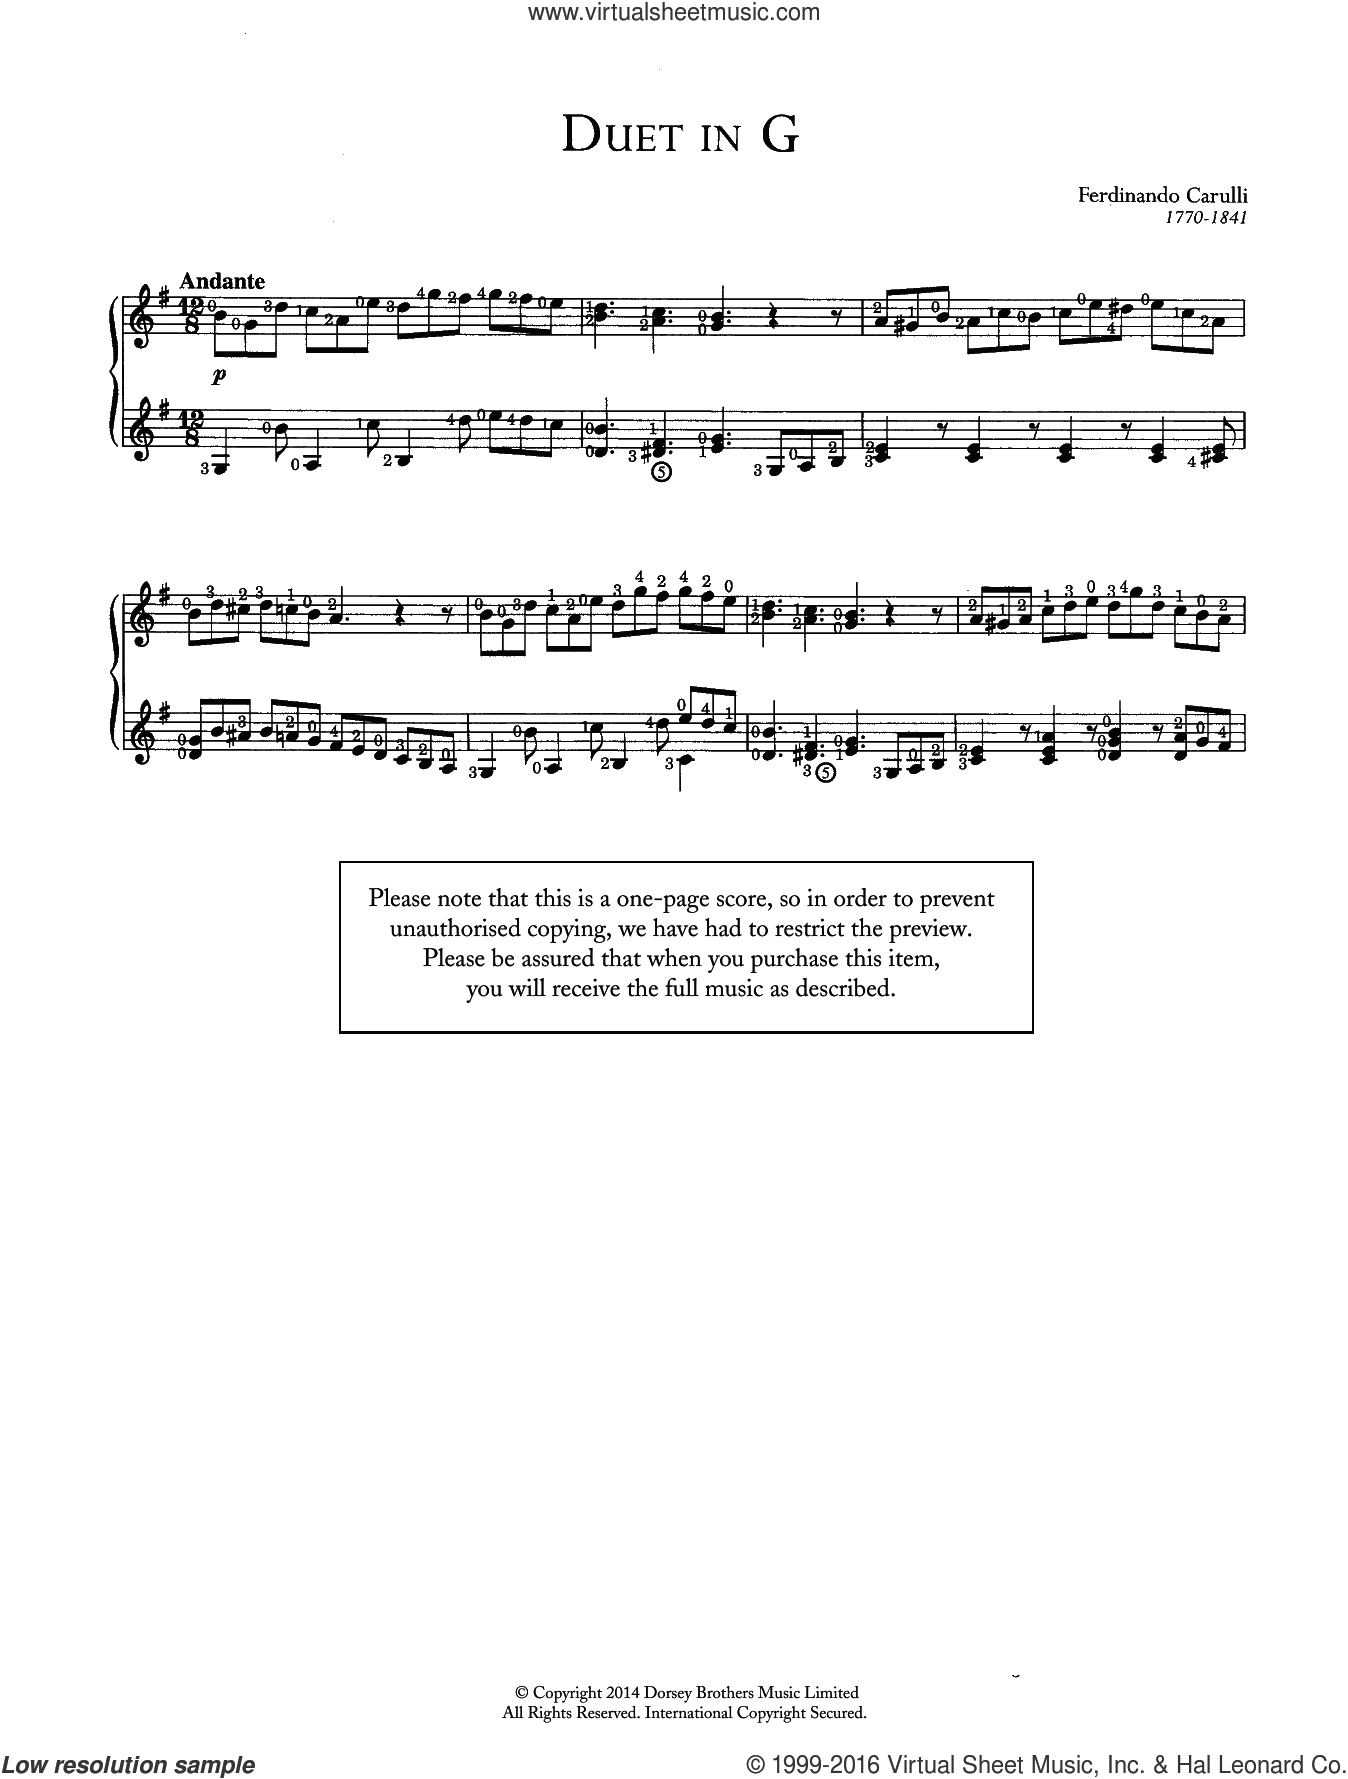 Duet In G sheet music for guitar solo (chords) by Ferdinando Carulli, classical score, easy guitar (chords)